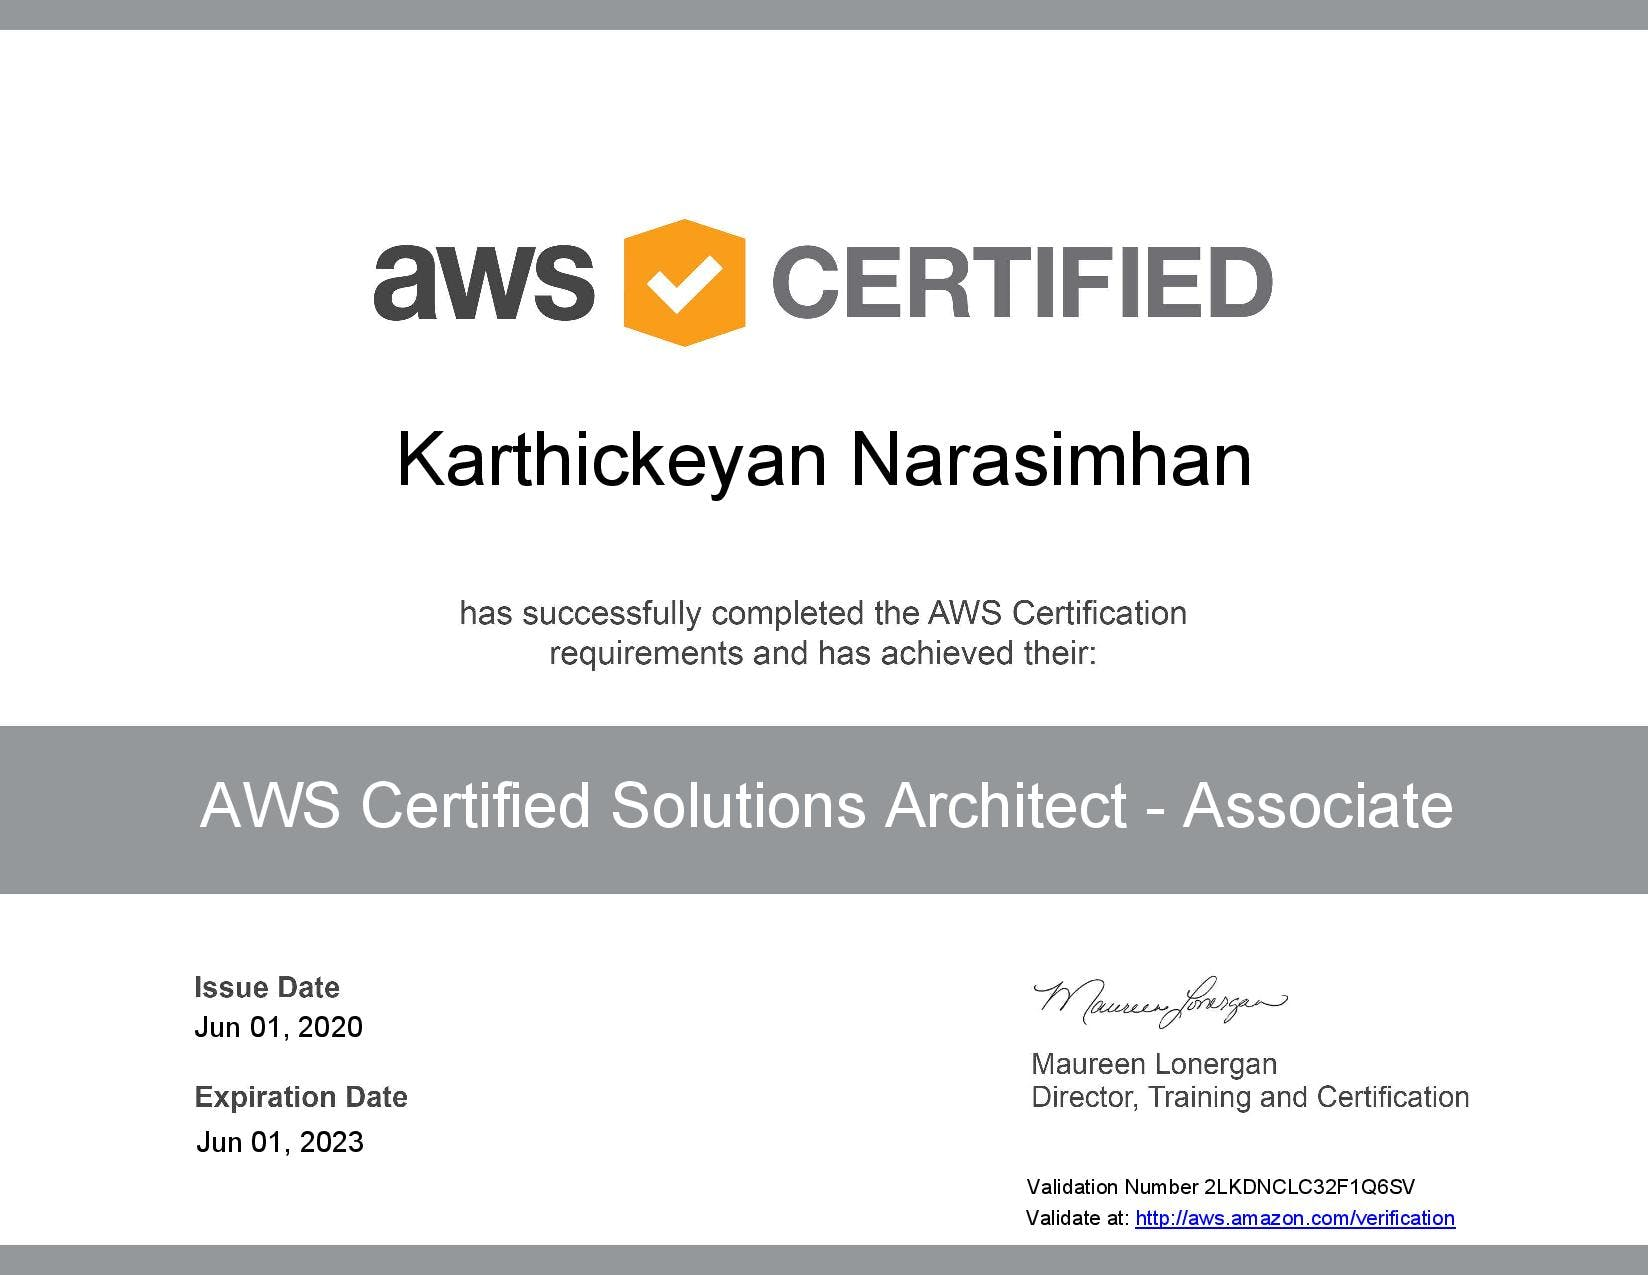 AWS Certified Solutions Architect - Associate certificate-page-001.jpg